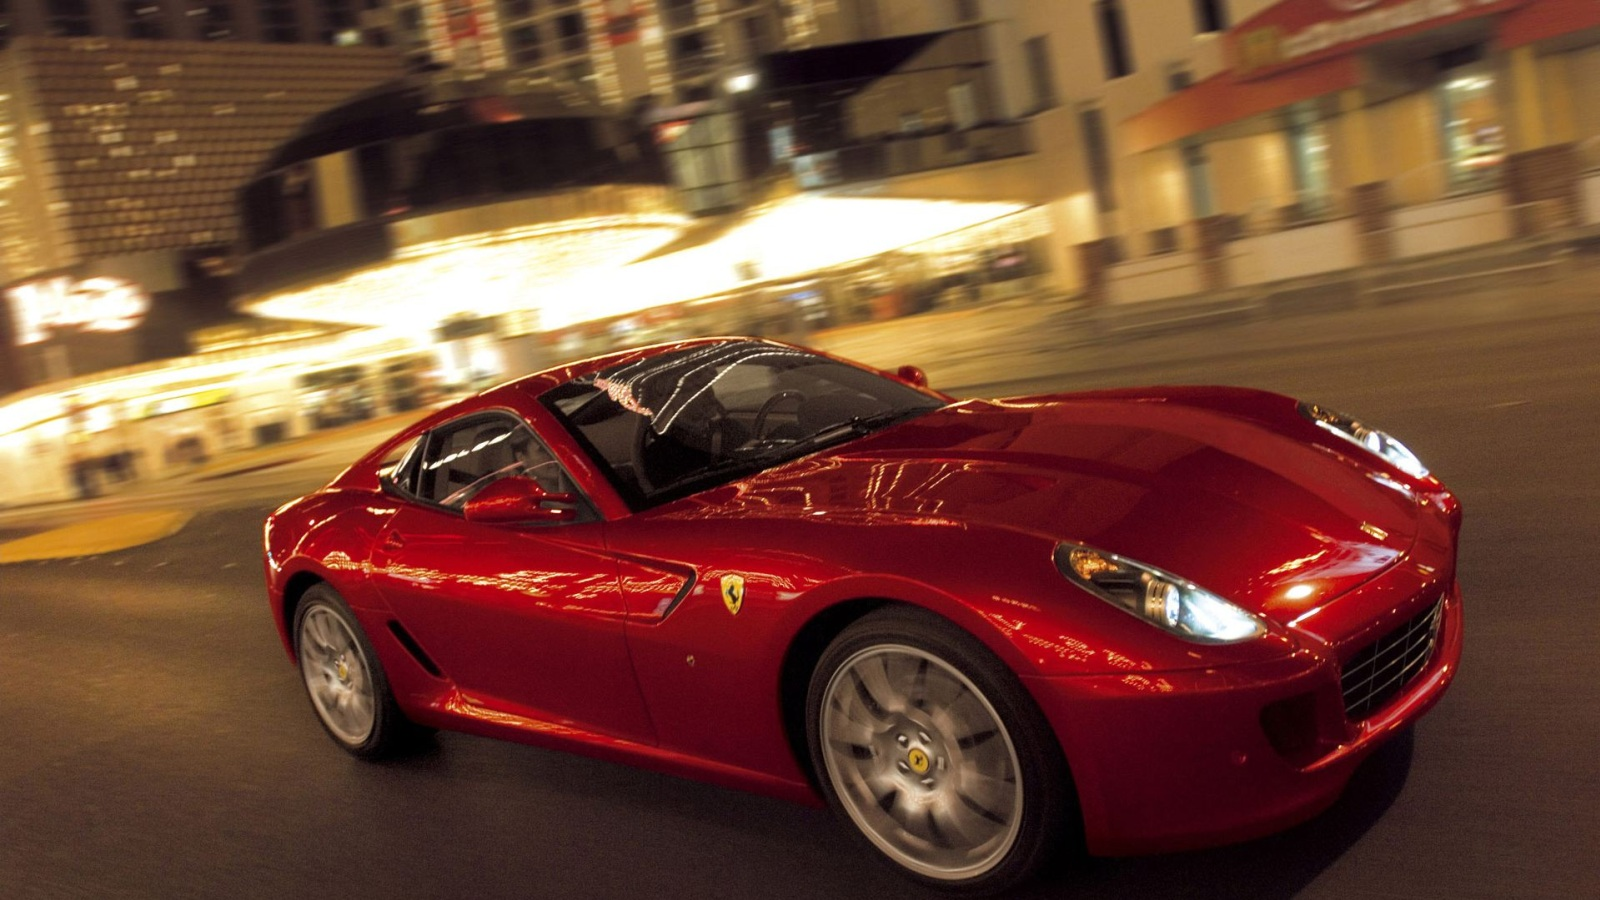 ferrari 599 gtb fiorano hd wallpapers hd car wallpapers. Black Bedroom Furniture Sets. Home Design Ideas